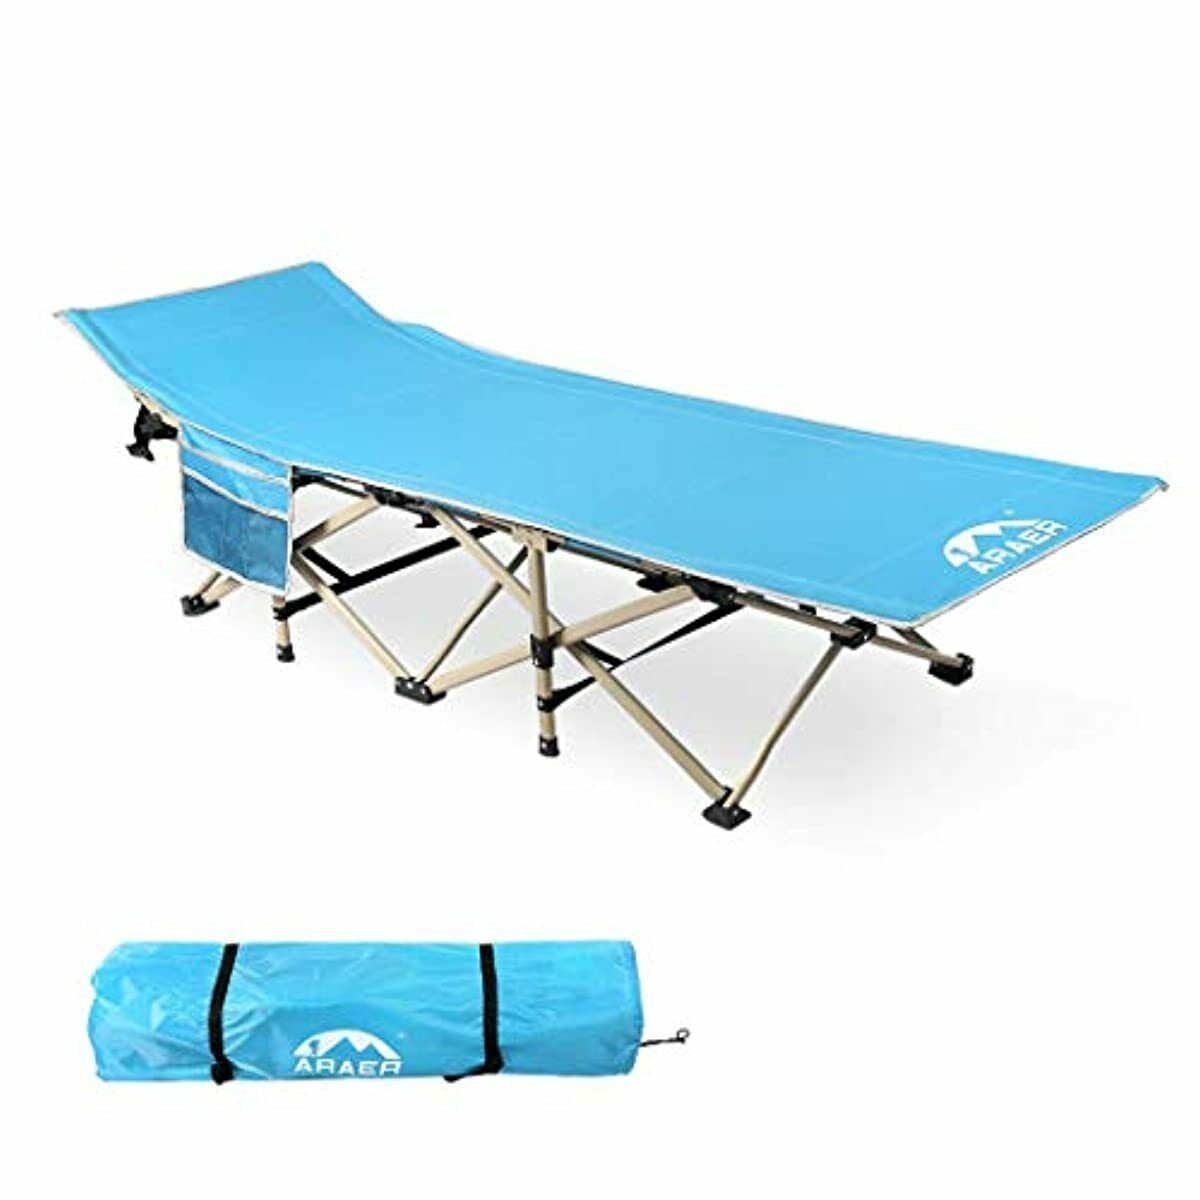 ARAER Camping Cot, 450LBS, Portable Foldable Outdoor Bed wit